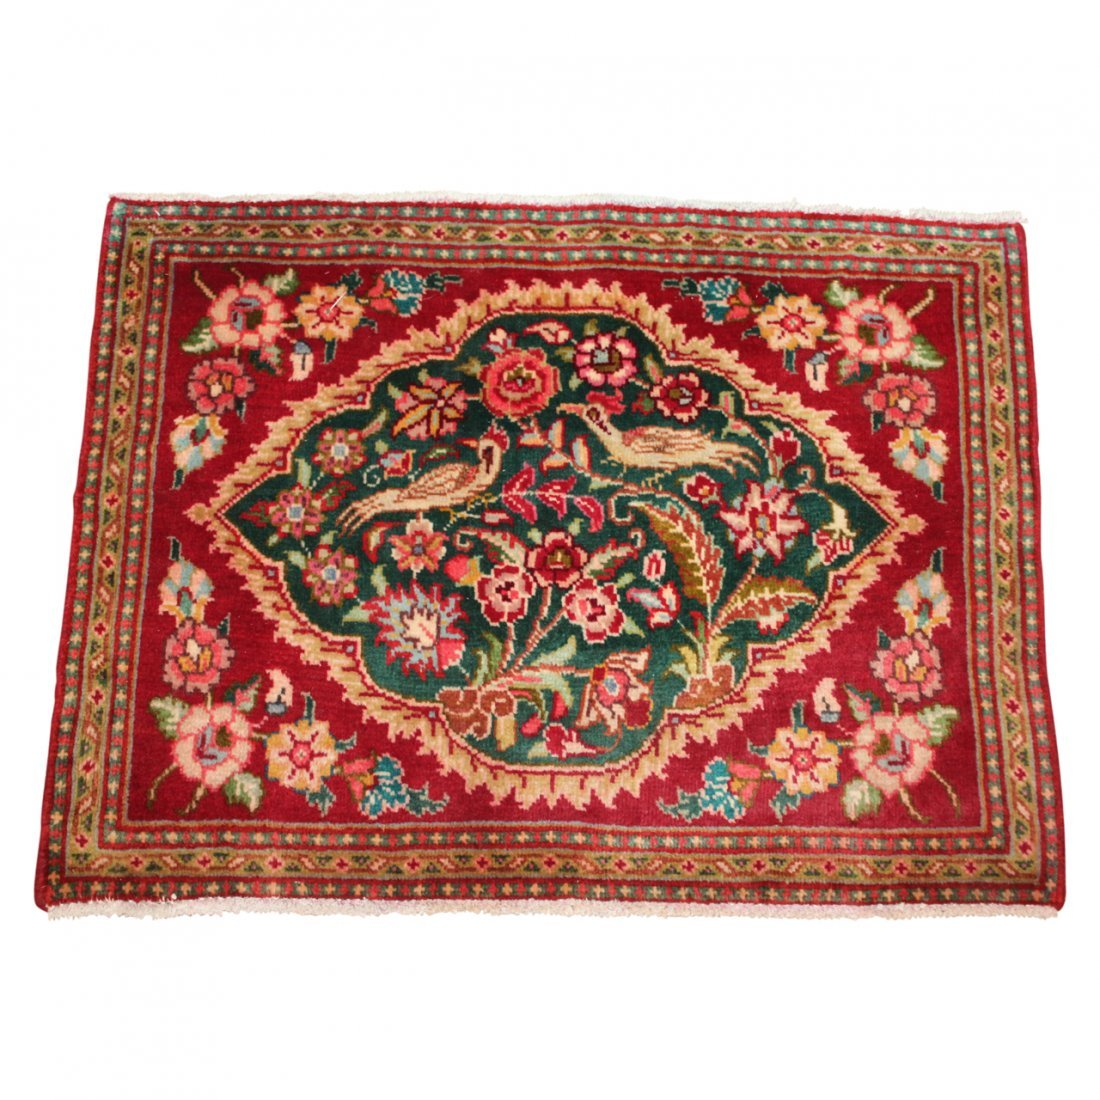 Small Persian Rug with Bird Motif